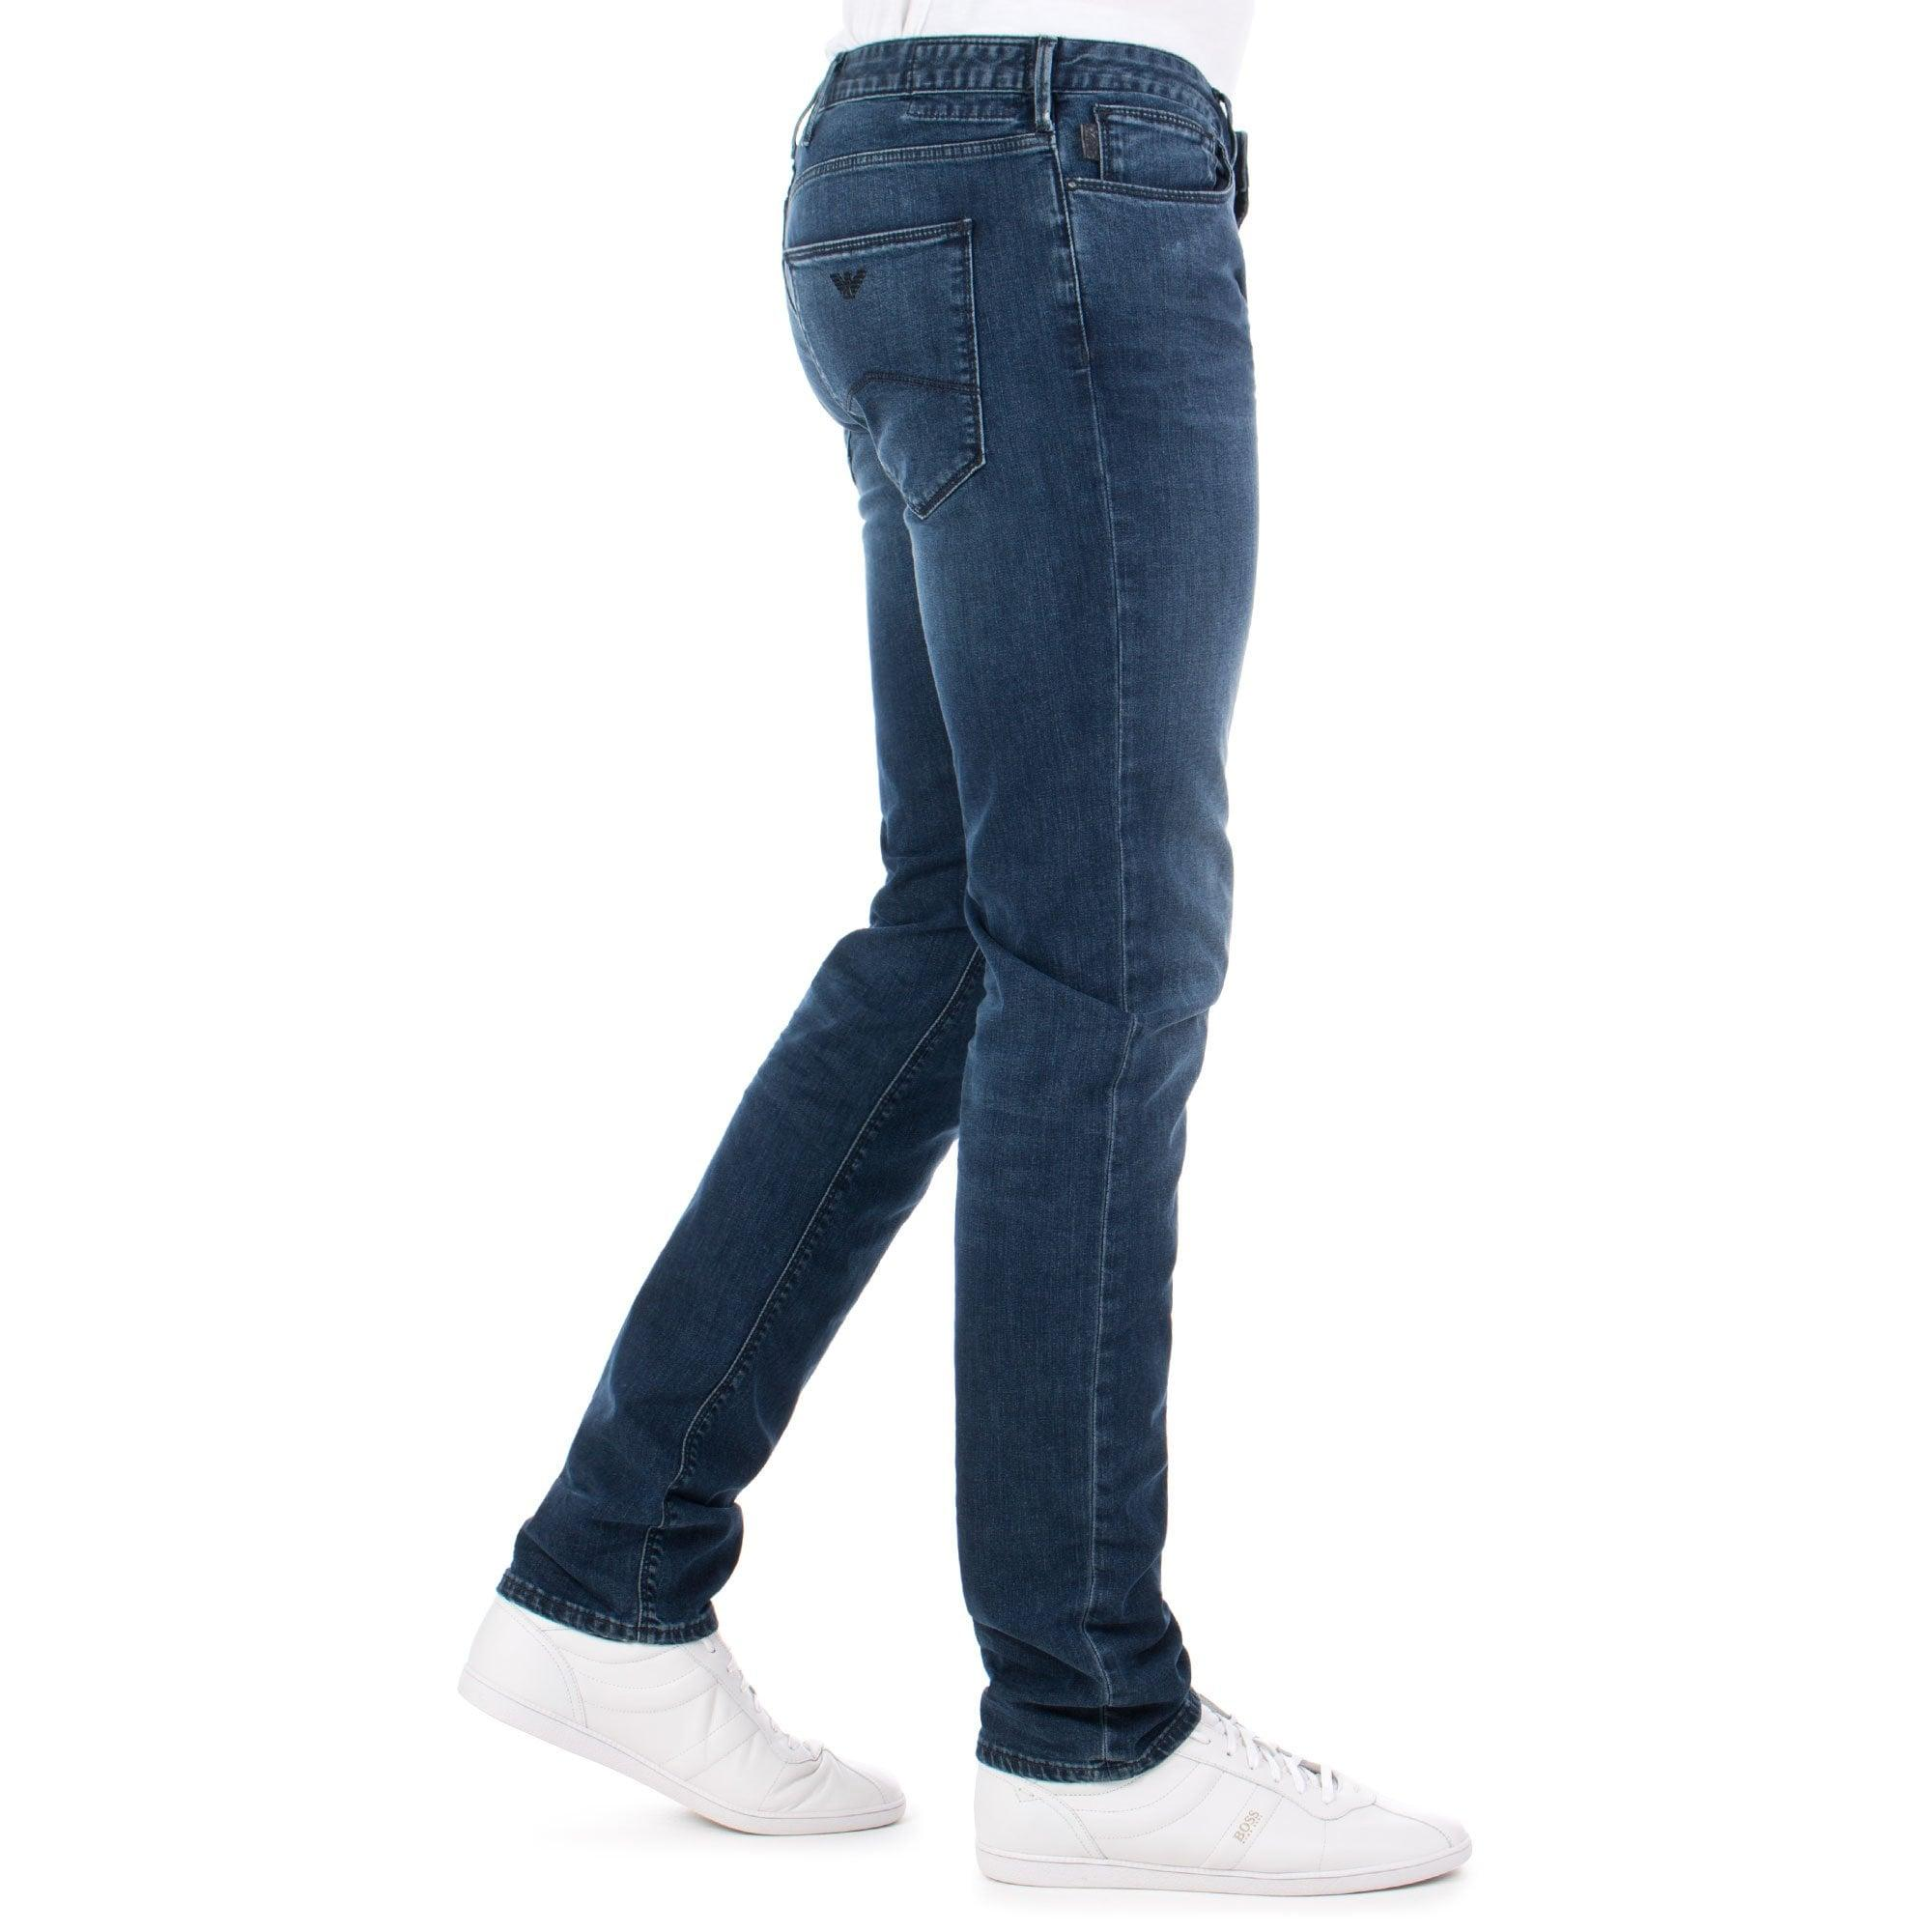 a5c5eae0 Emporio Armani J06 Slim Fit Jeans in Blue for Men - Lyst